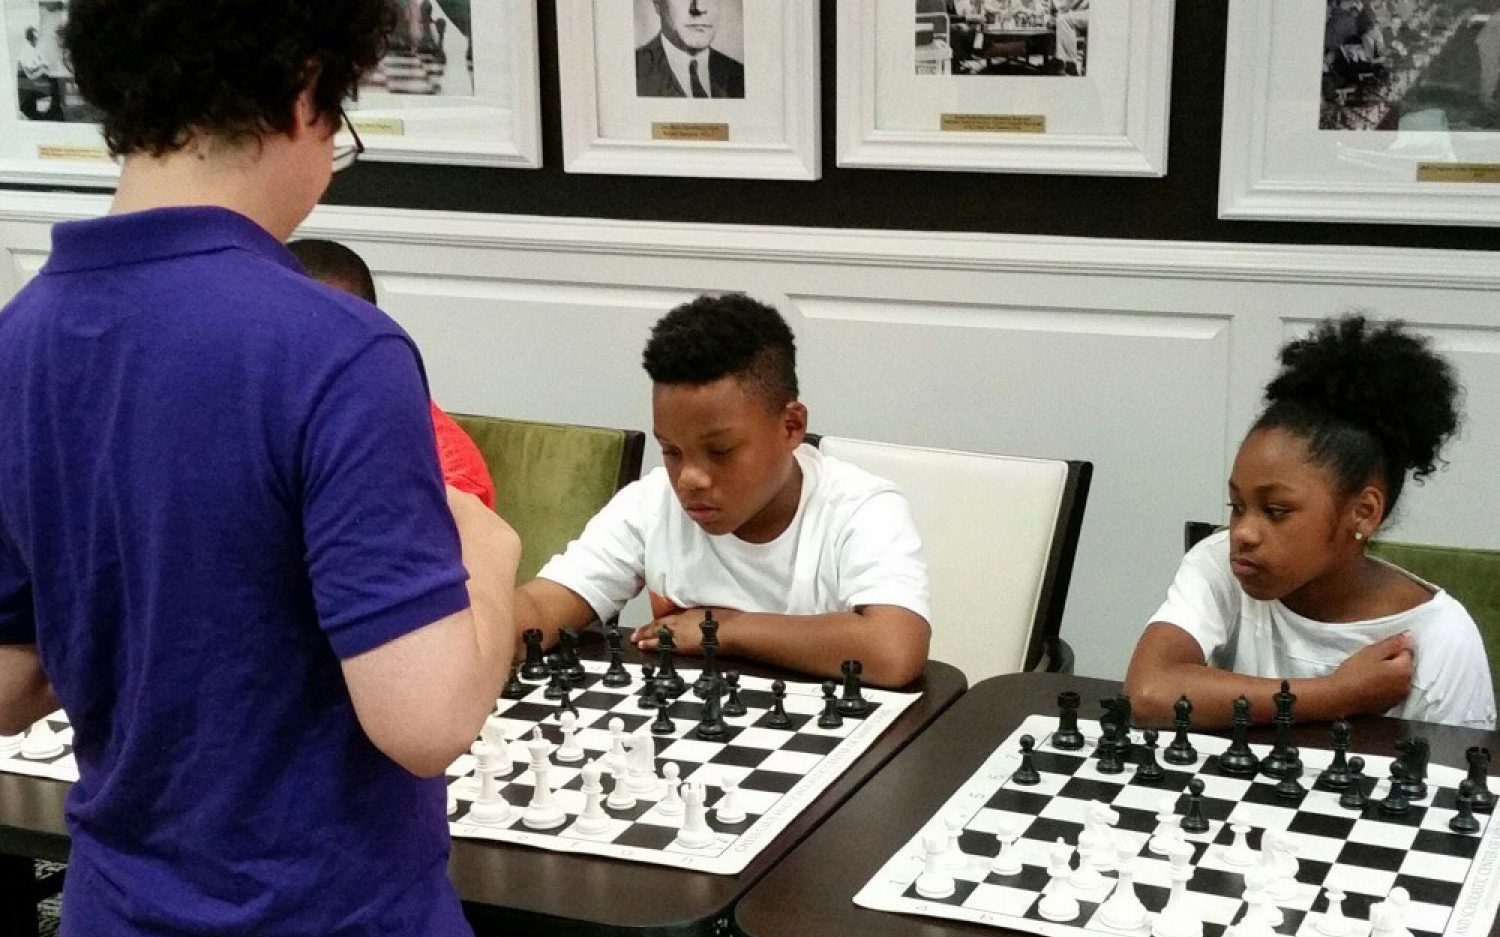 Chess helps Ferguson students cope with lingering trauma